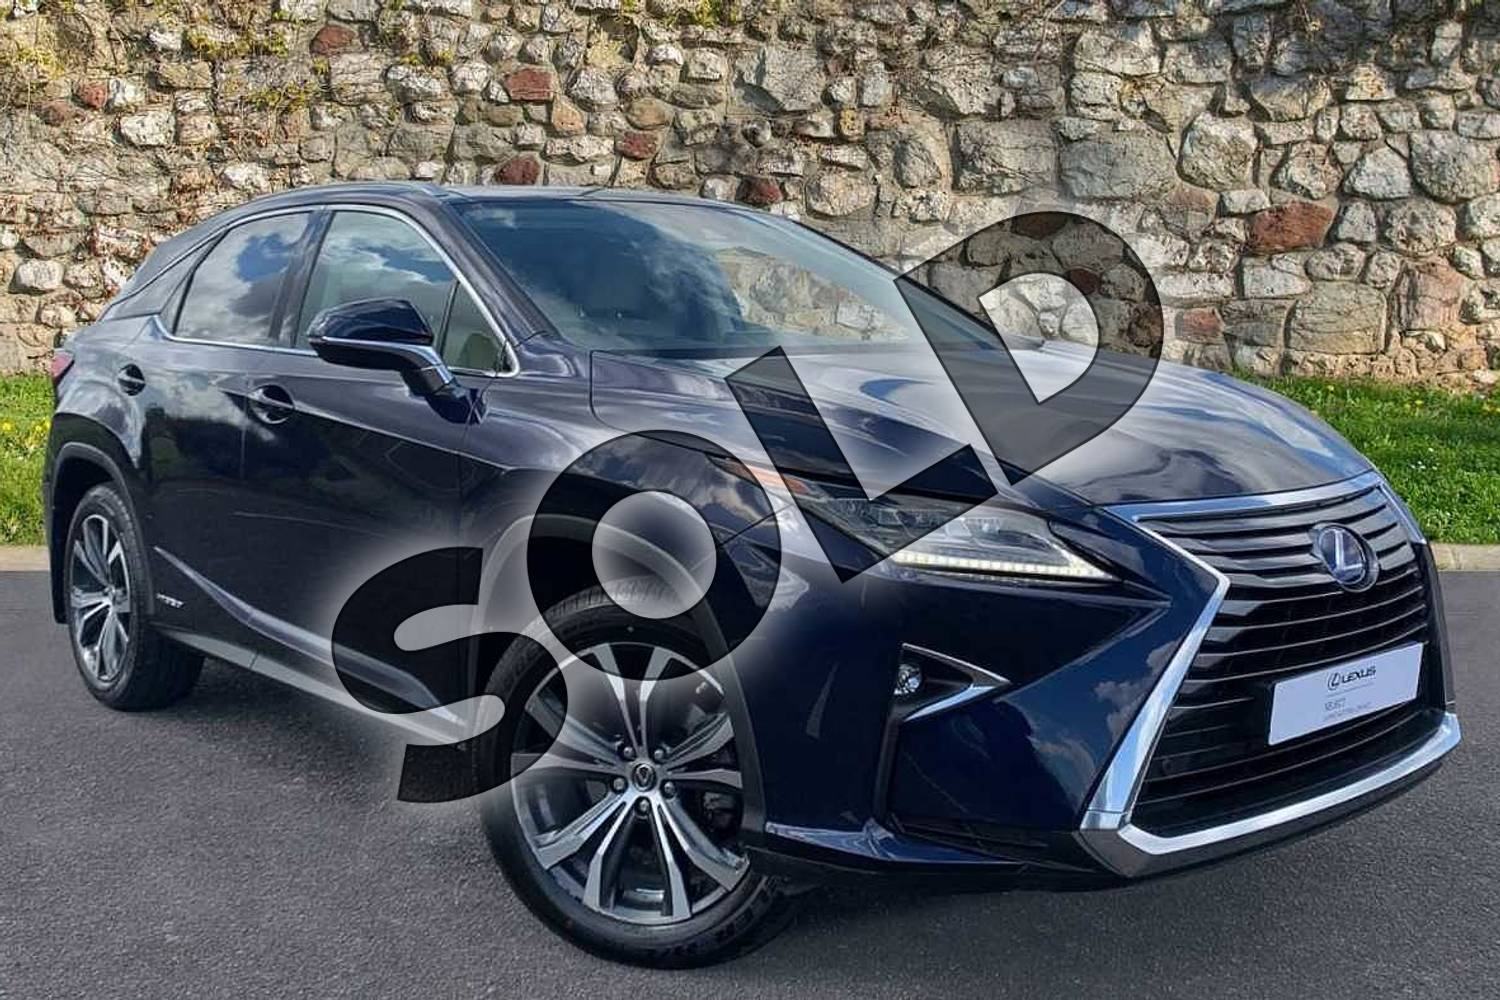 2018 Lexus RX 450h 3.5  4X4 Pan Roof  Luxury Panroof in Deep Blue at Lexus Coventry